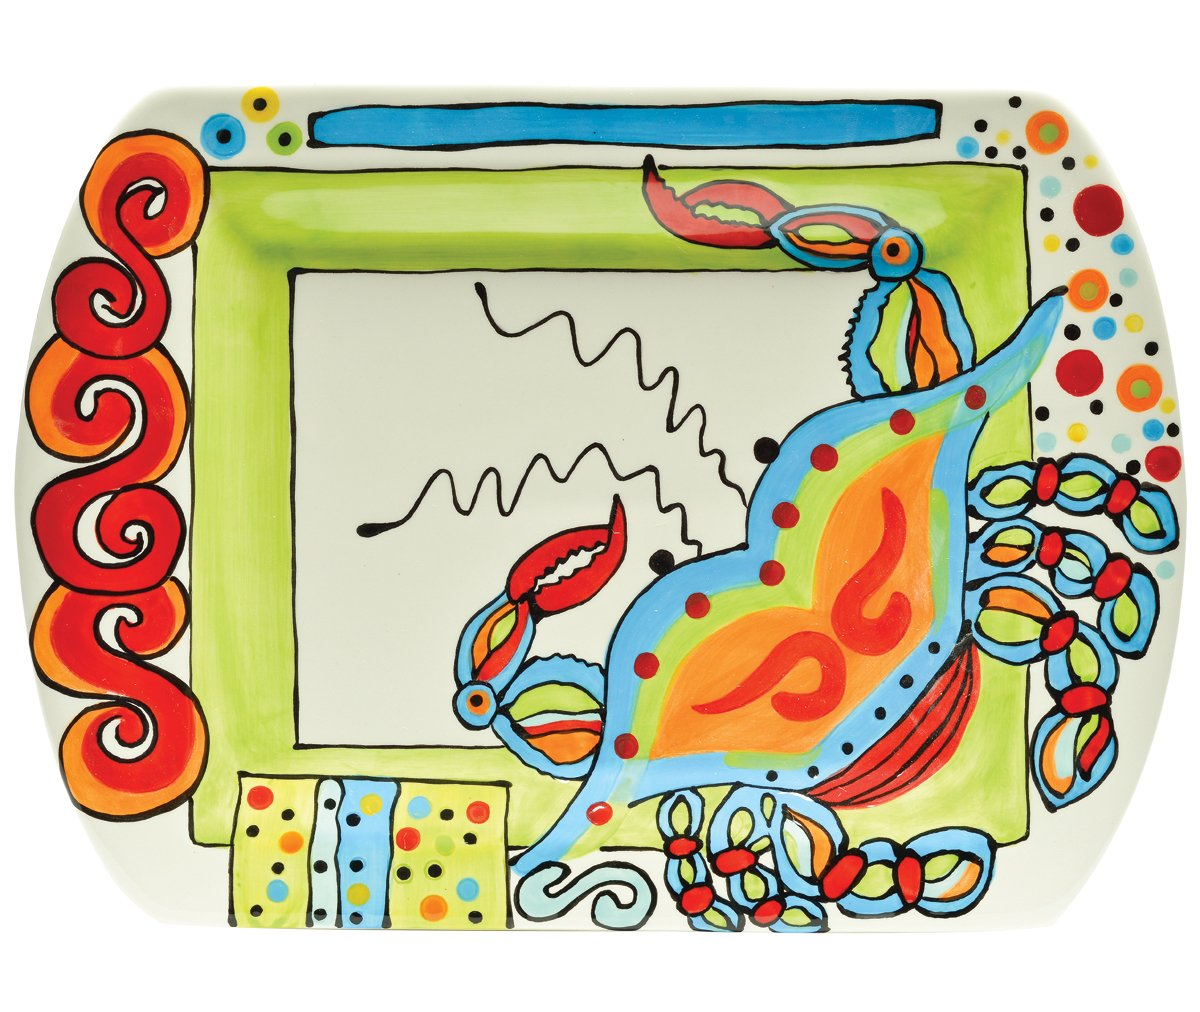 Ceramic crab inspired multicolor rectangular platter by Dana Wittmann